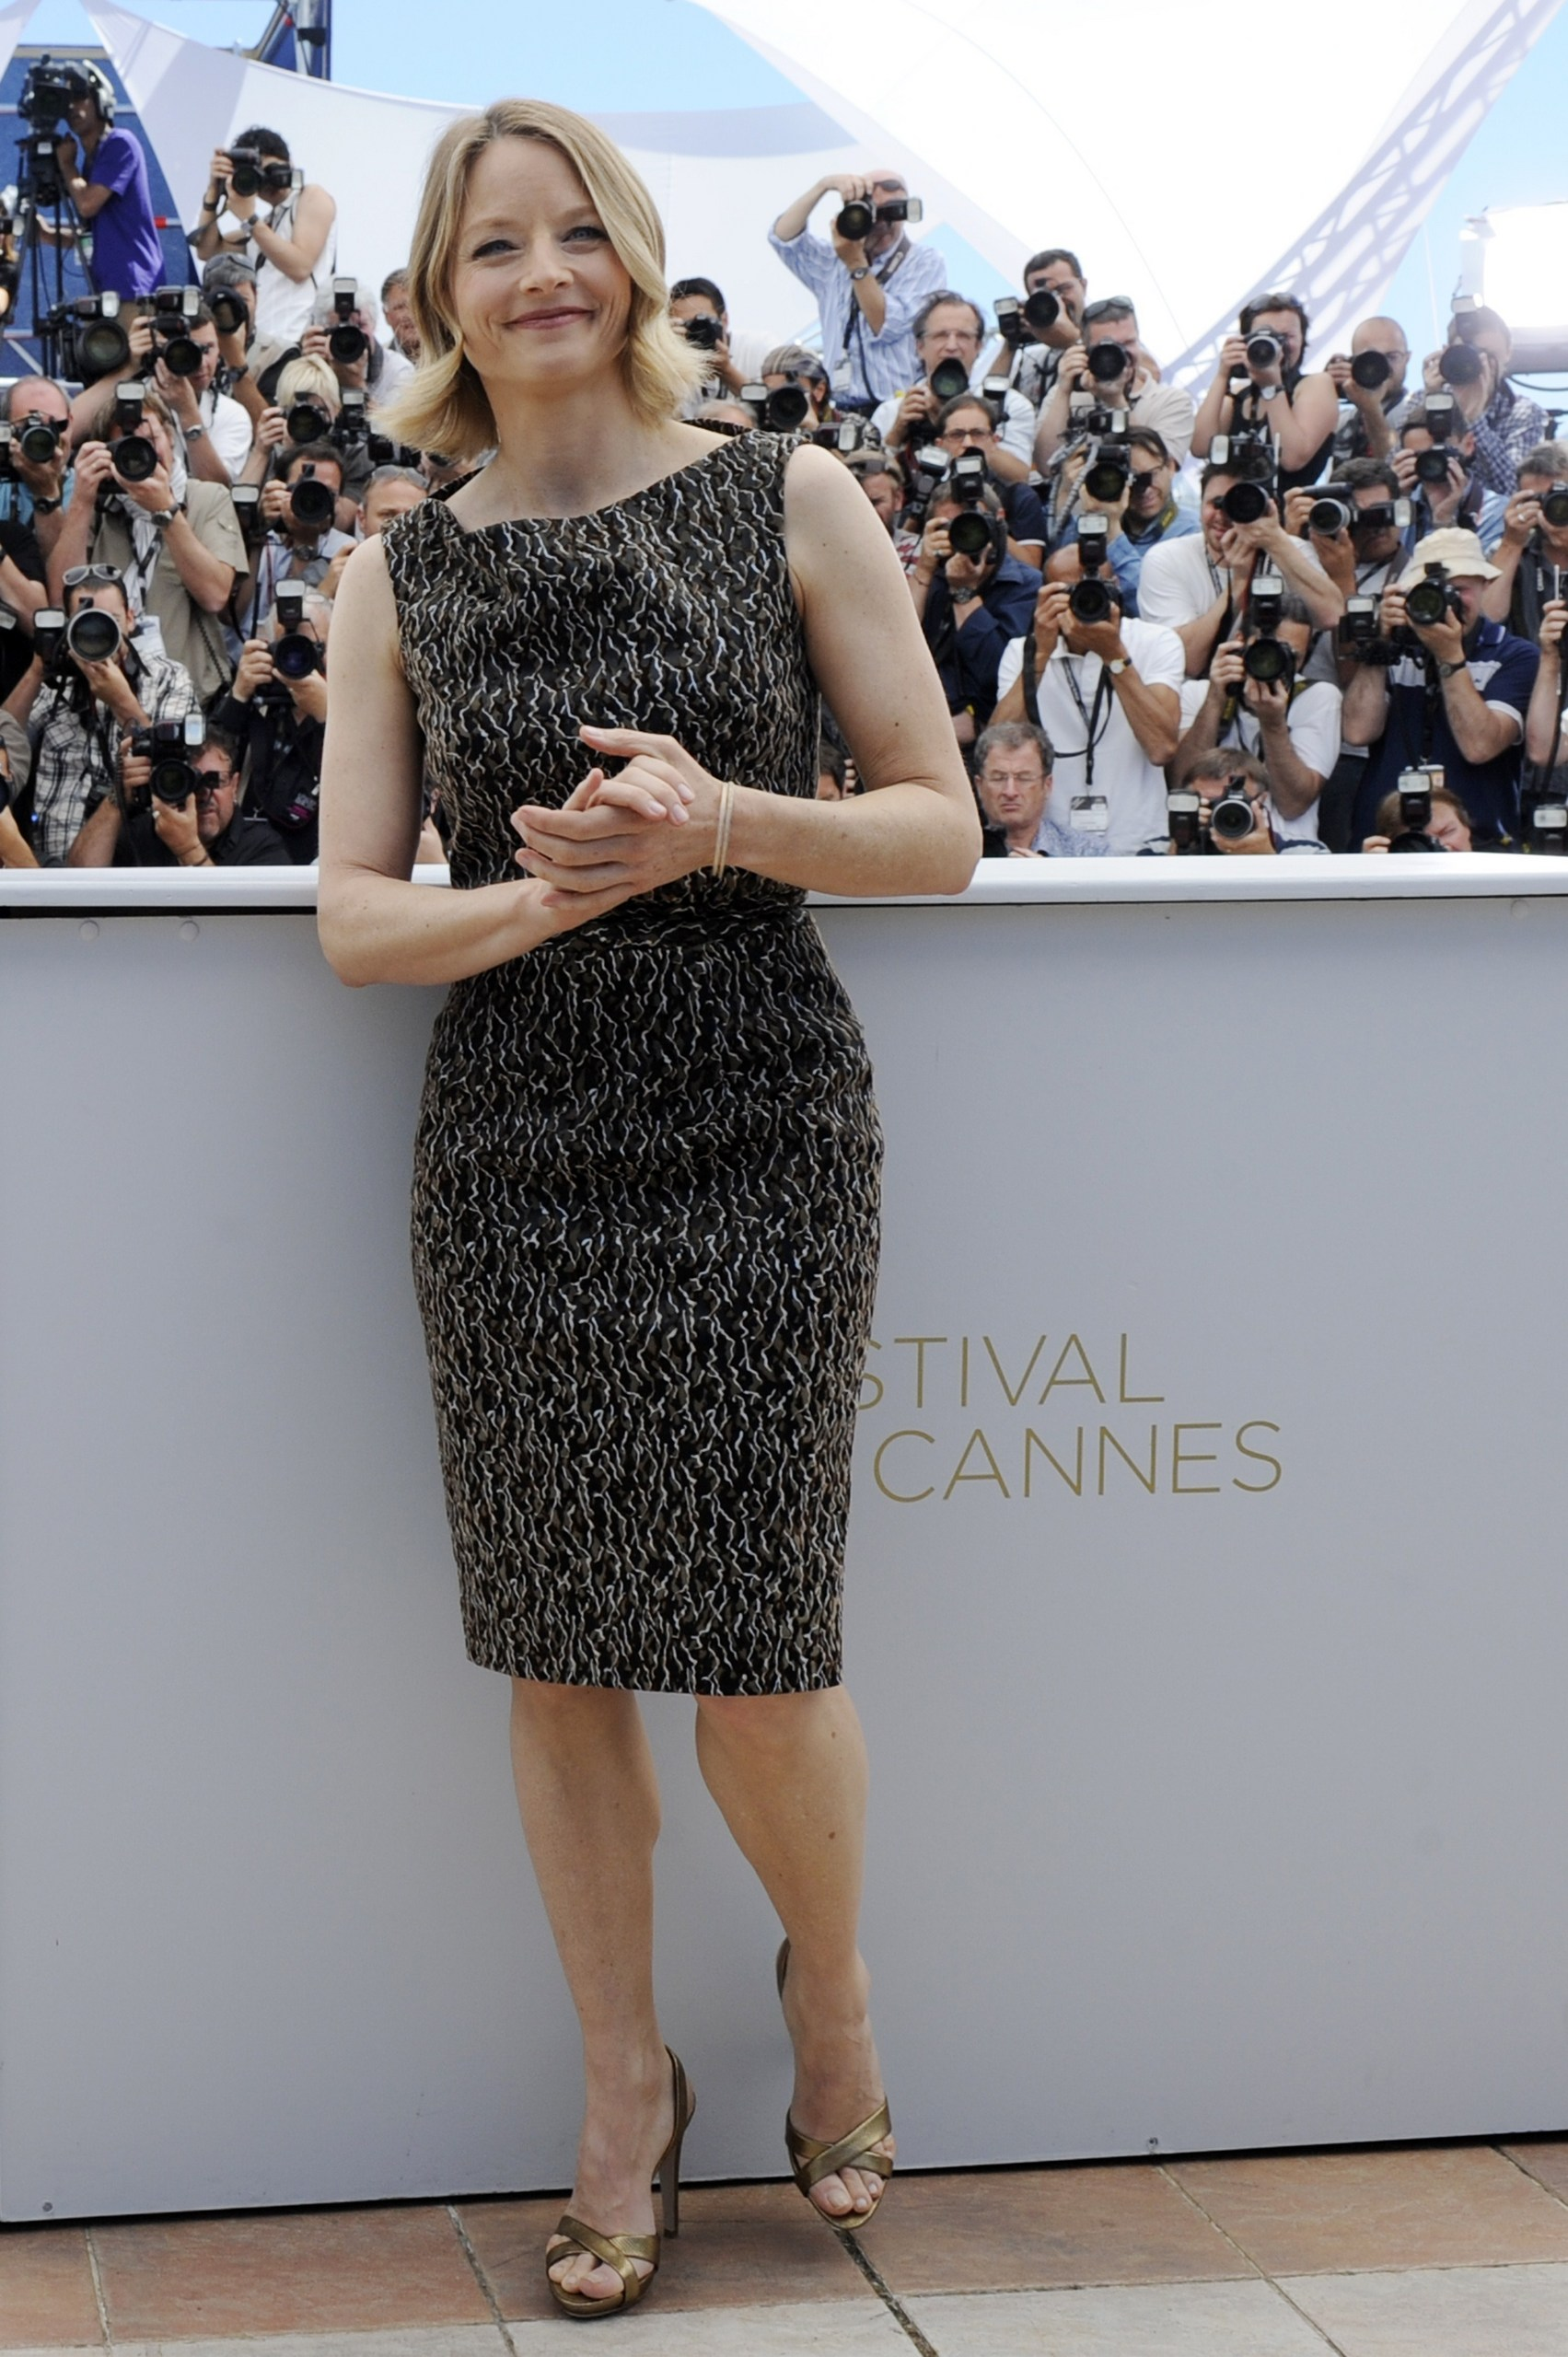 Jodie In Cannes